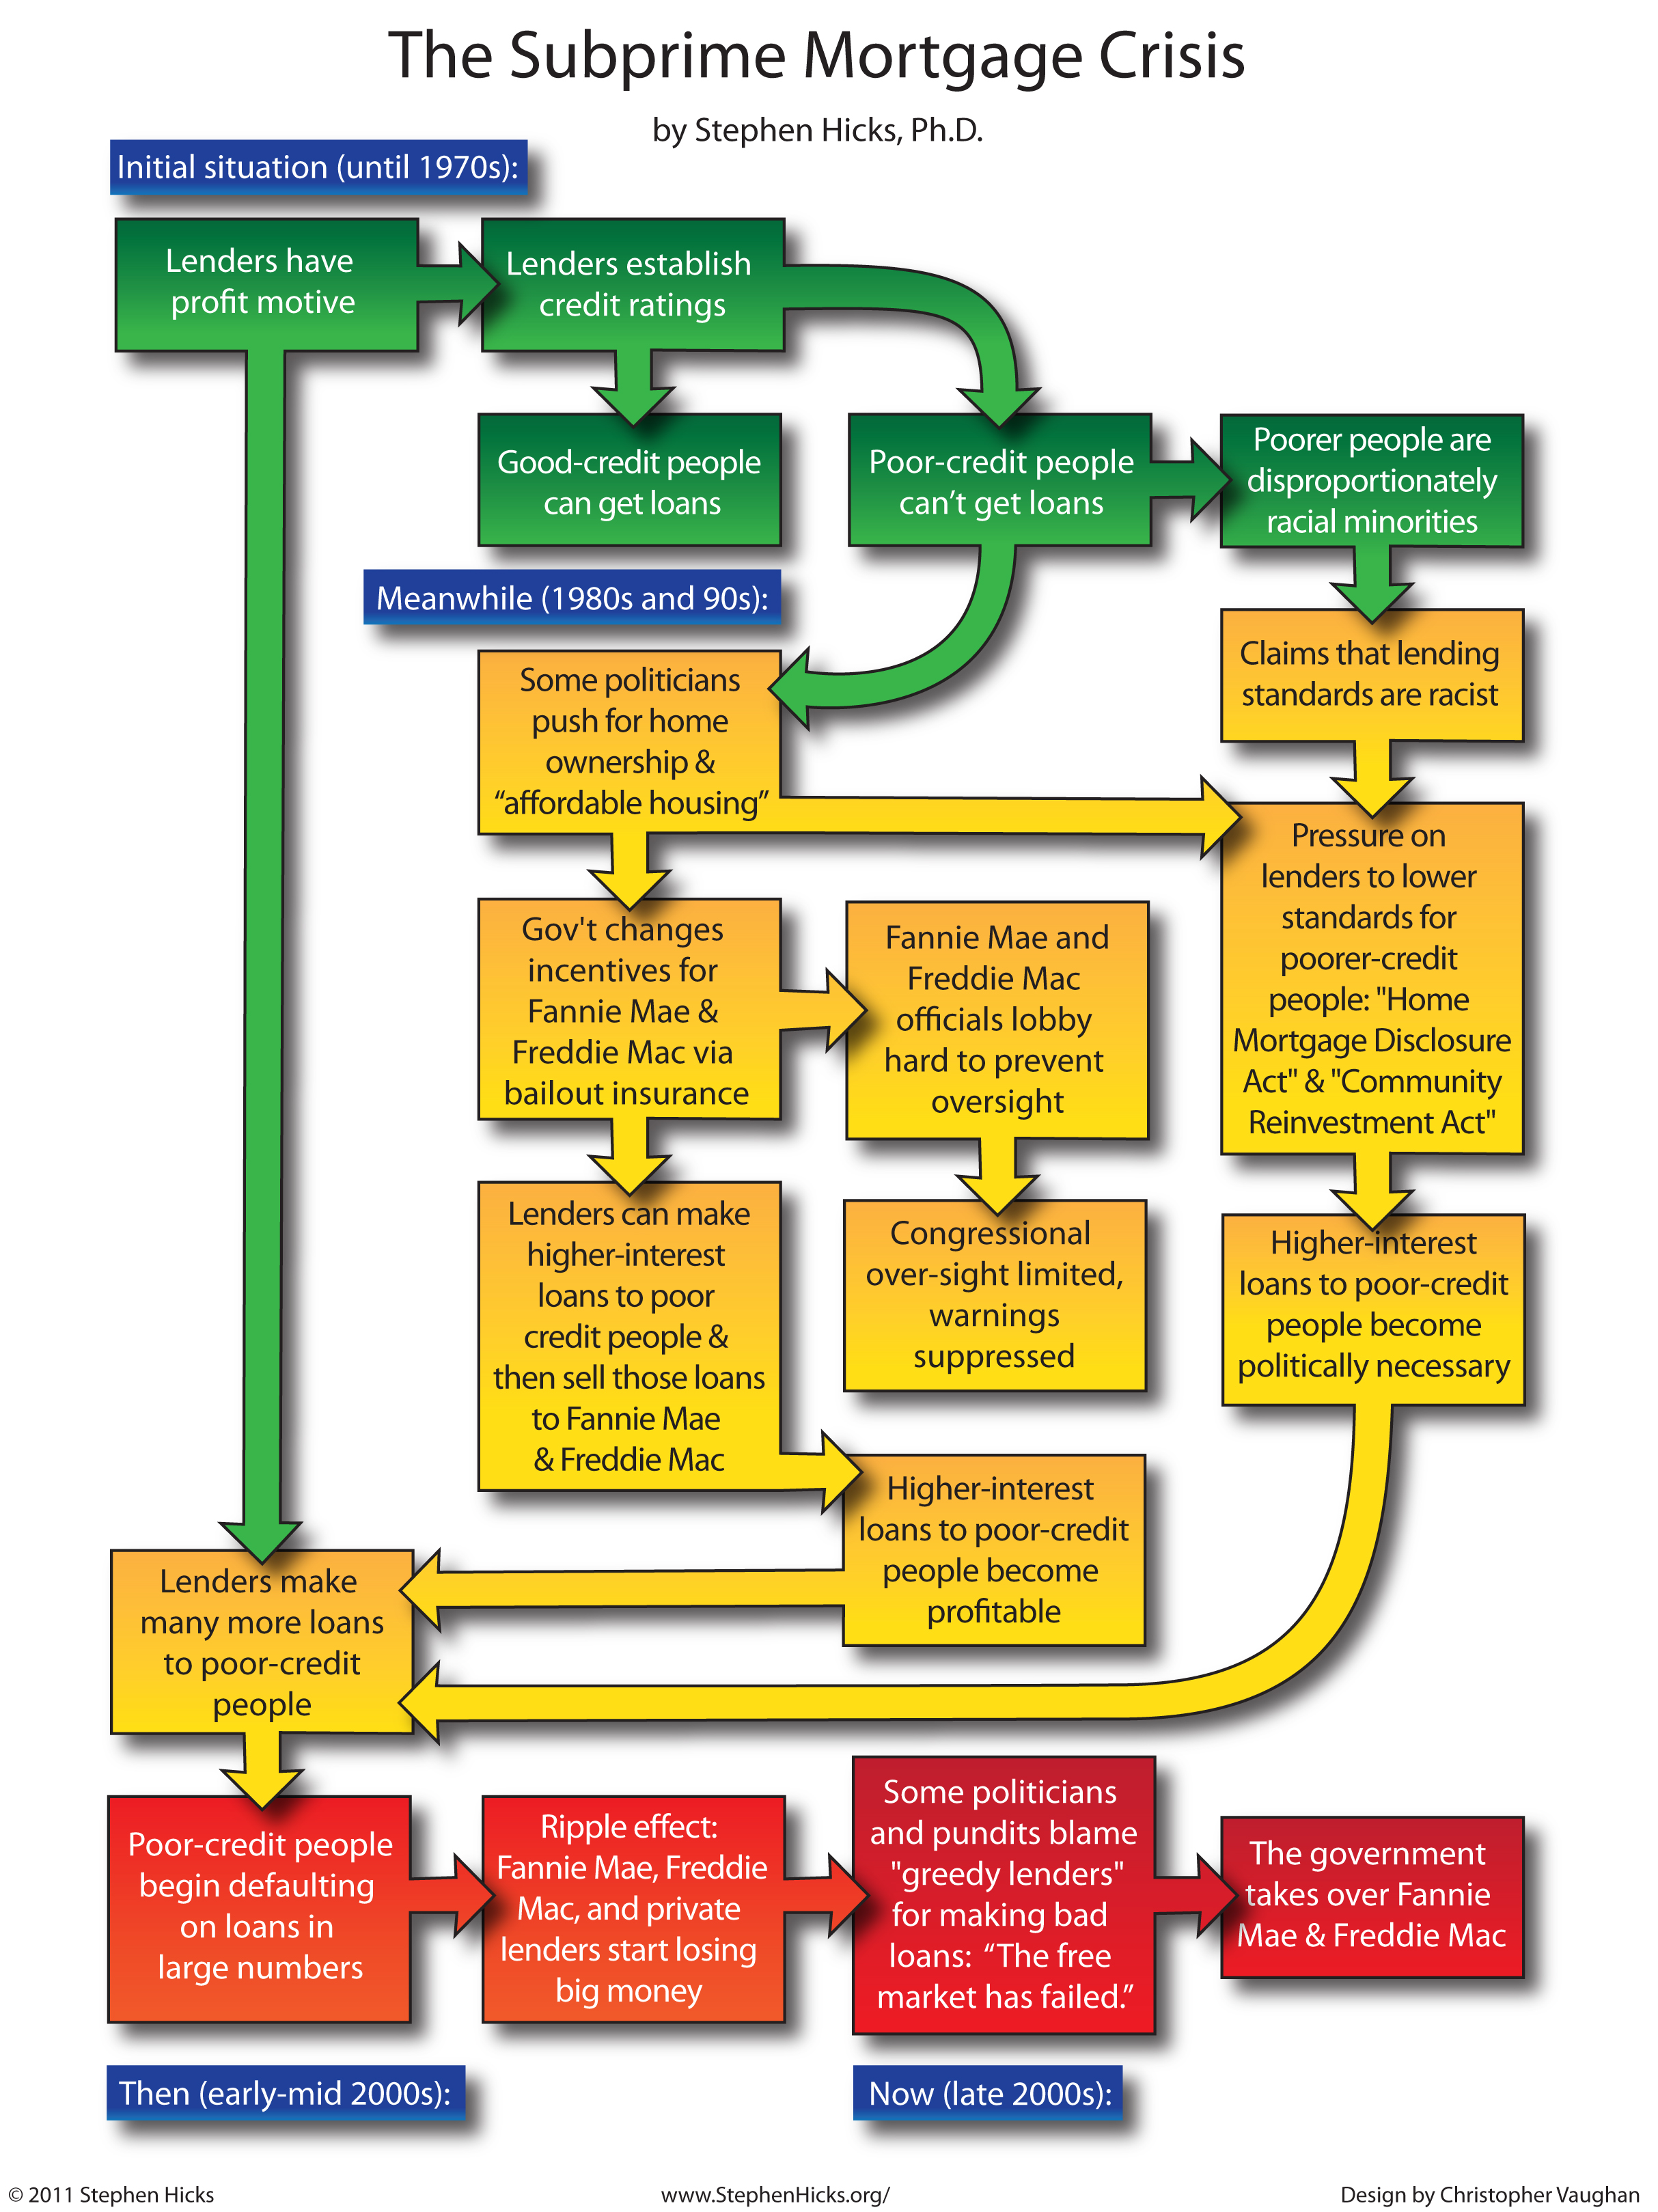 Subprime mortgage crisis history flowchart stephen hicks phd click on the image for nvjuhfo Gallery